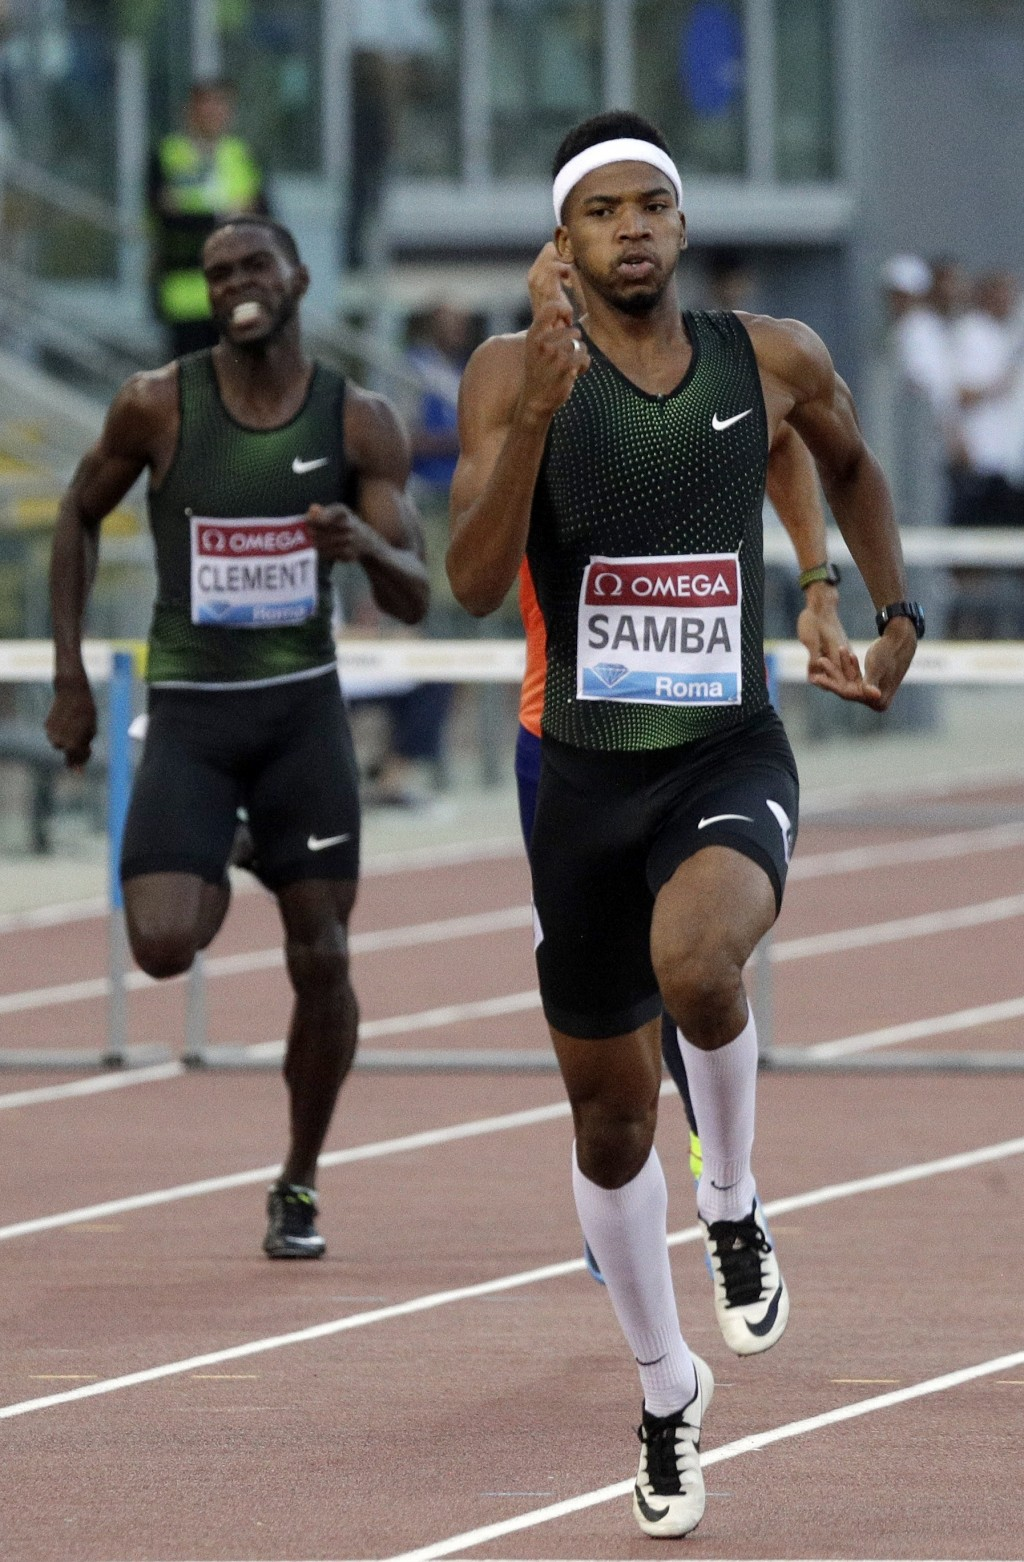 Qatar's Abderrahman Samba competes to win the men's 400m hurdles, during the Golden Gala, the first European meeting of the Diamond League, at the Rom...